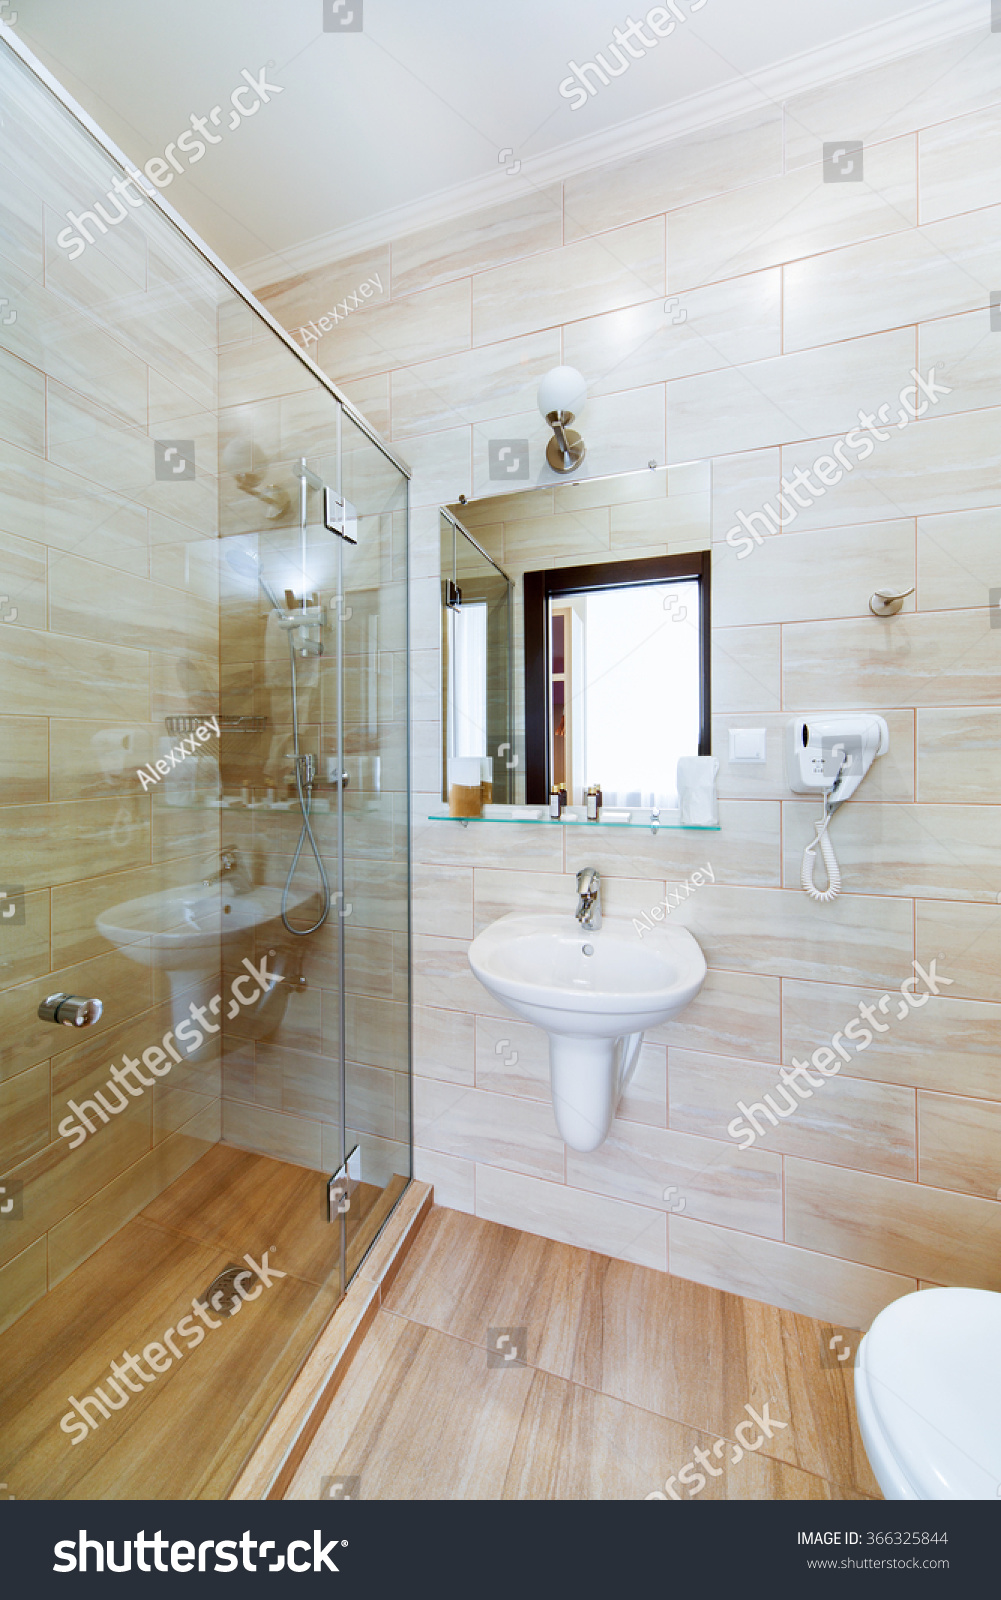 Small Bathroom Hotel Rooms Shower Washbasin Stock Photo (Royalty ...